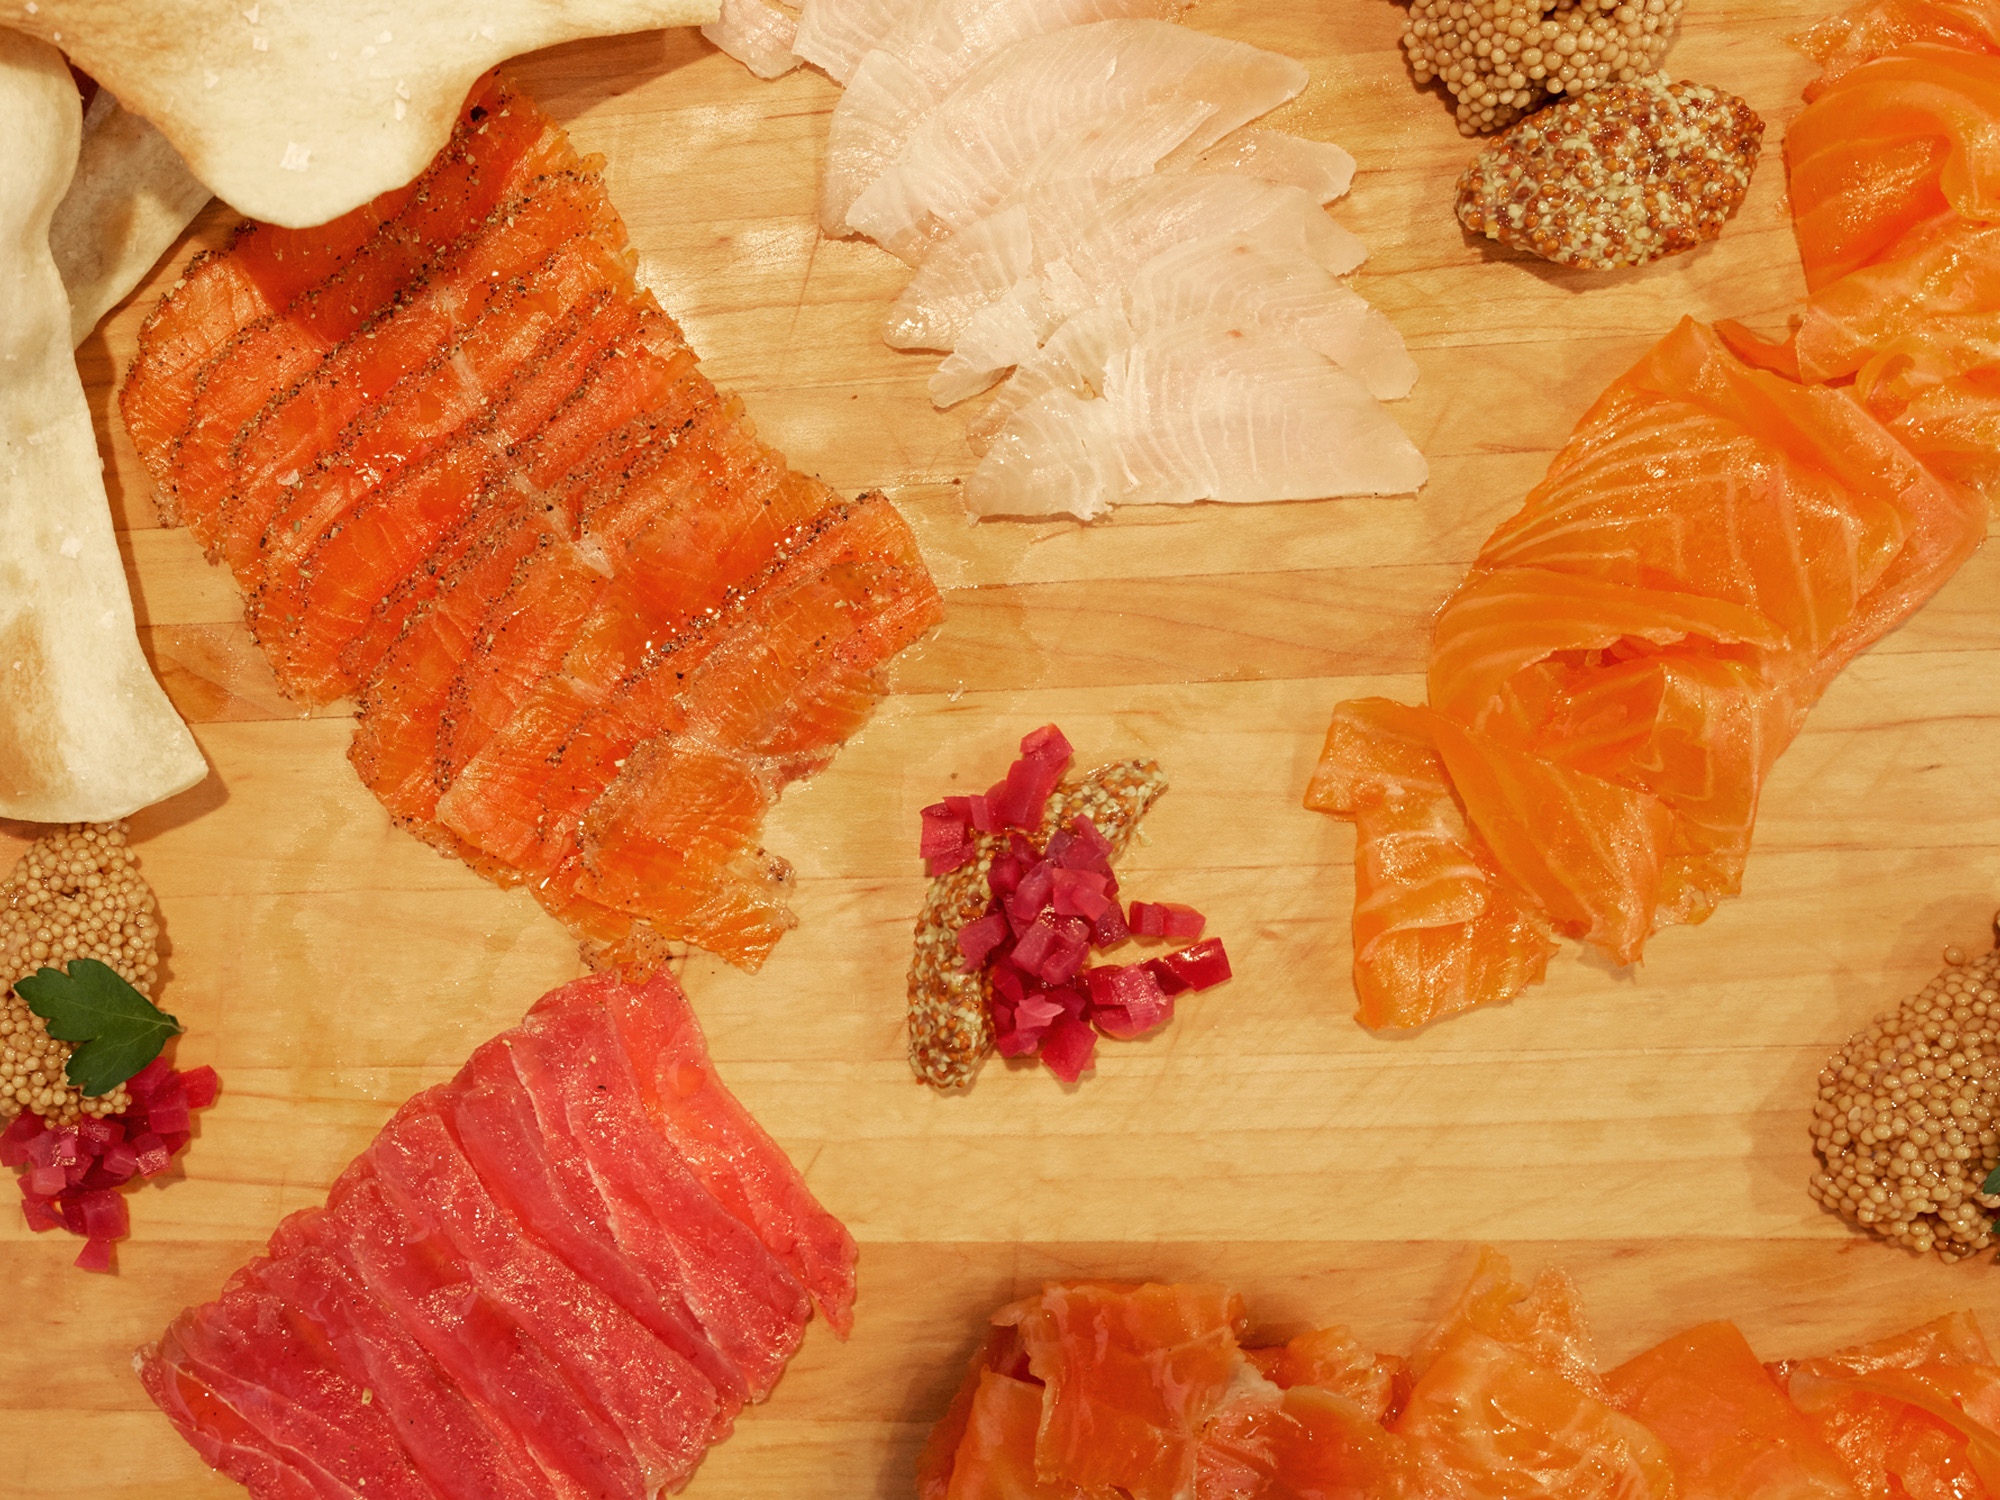 FIRST LOOK AT SNAGGLETOOTH, CHICAGO'S ARTISAN FISH DELI, OPENING SATURDAY